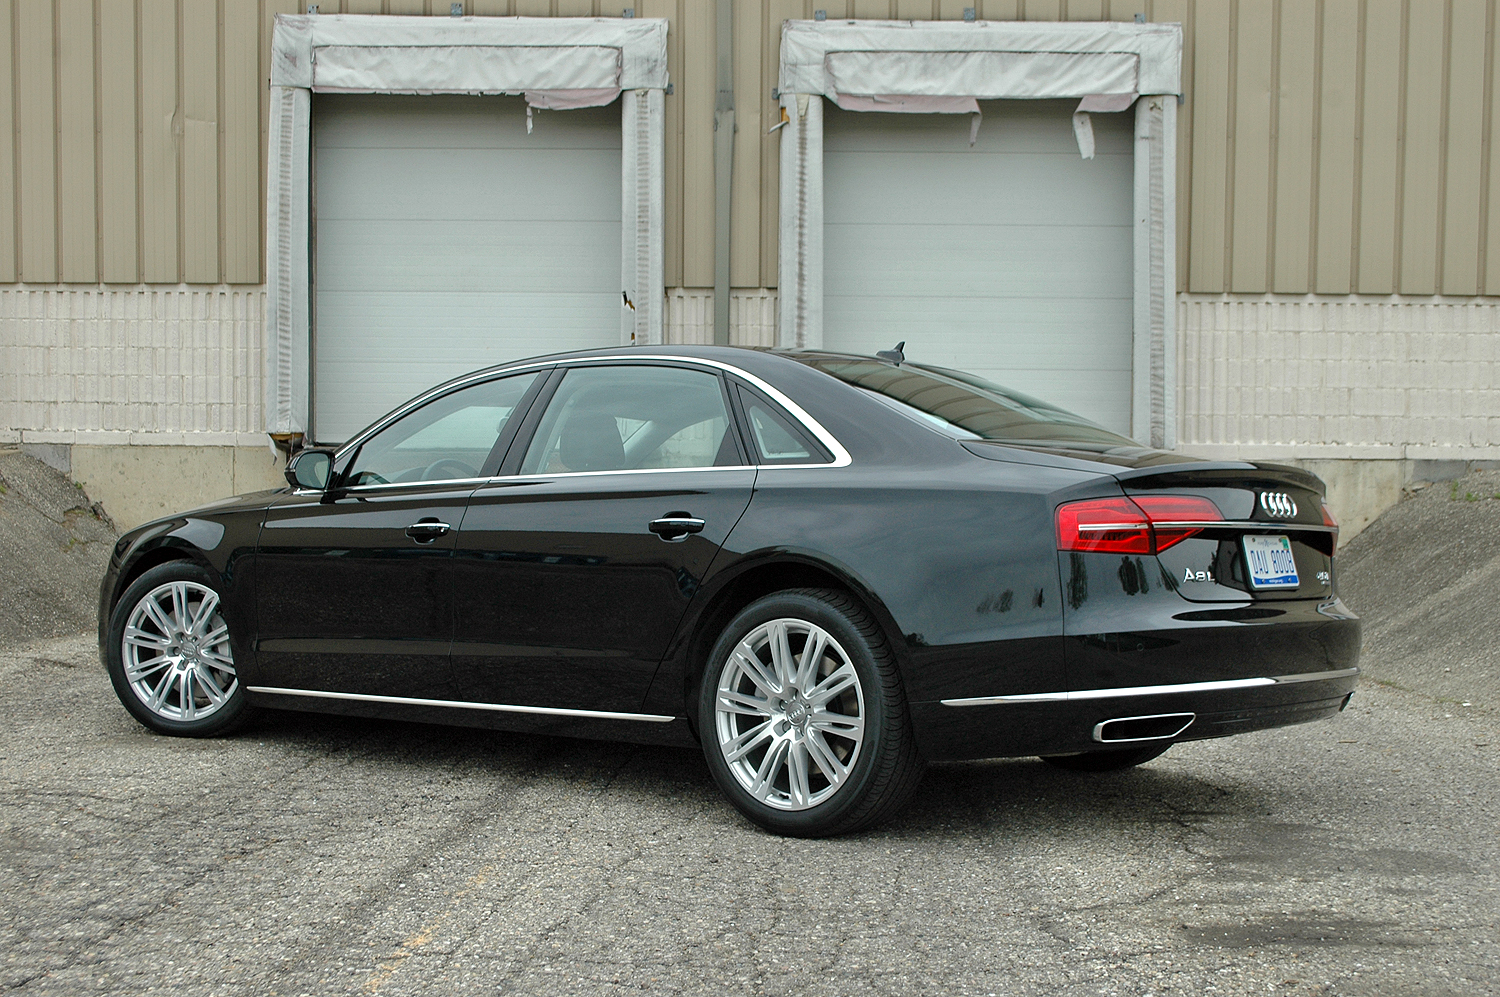 2015 Audi A8 - Driven | Top Speed